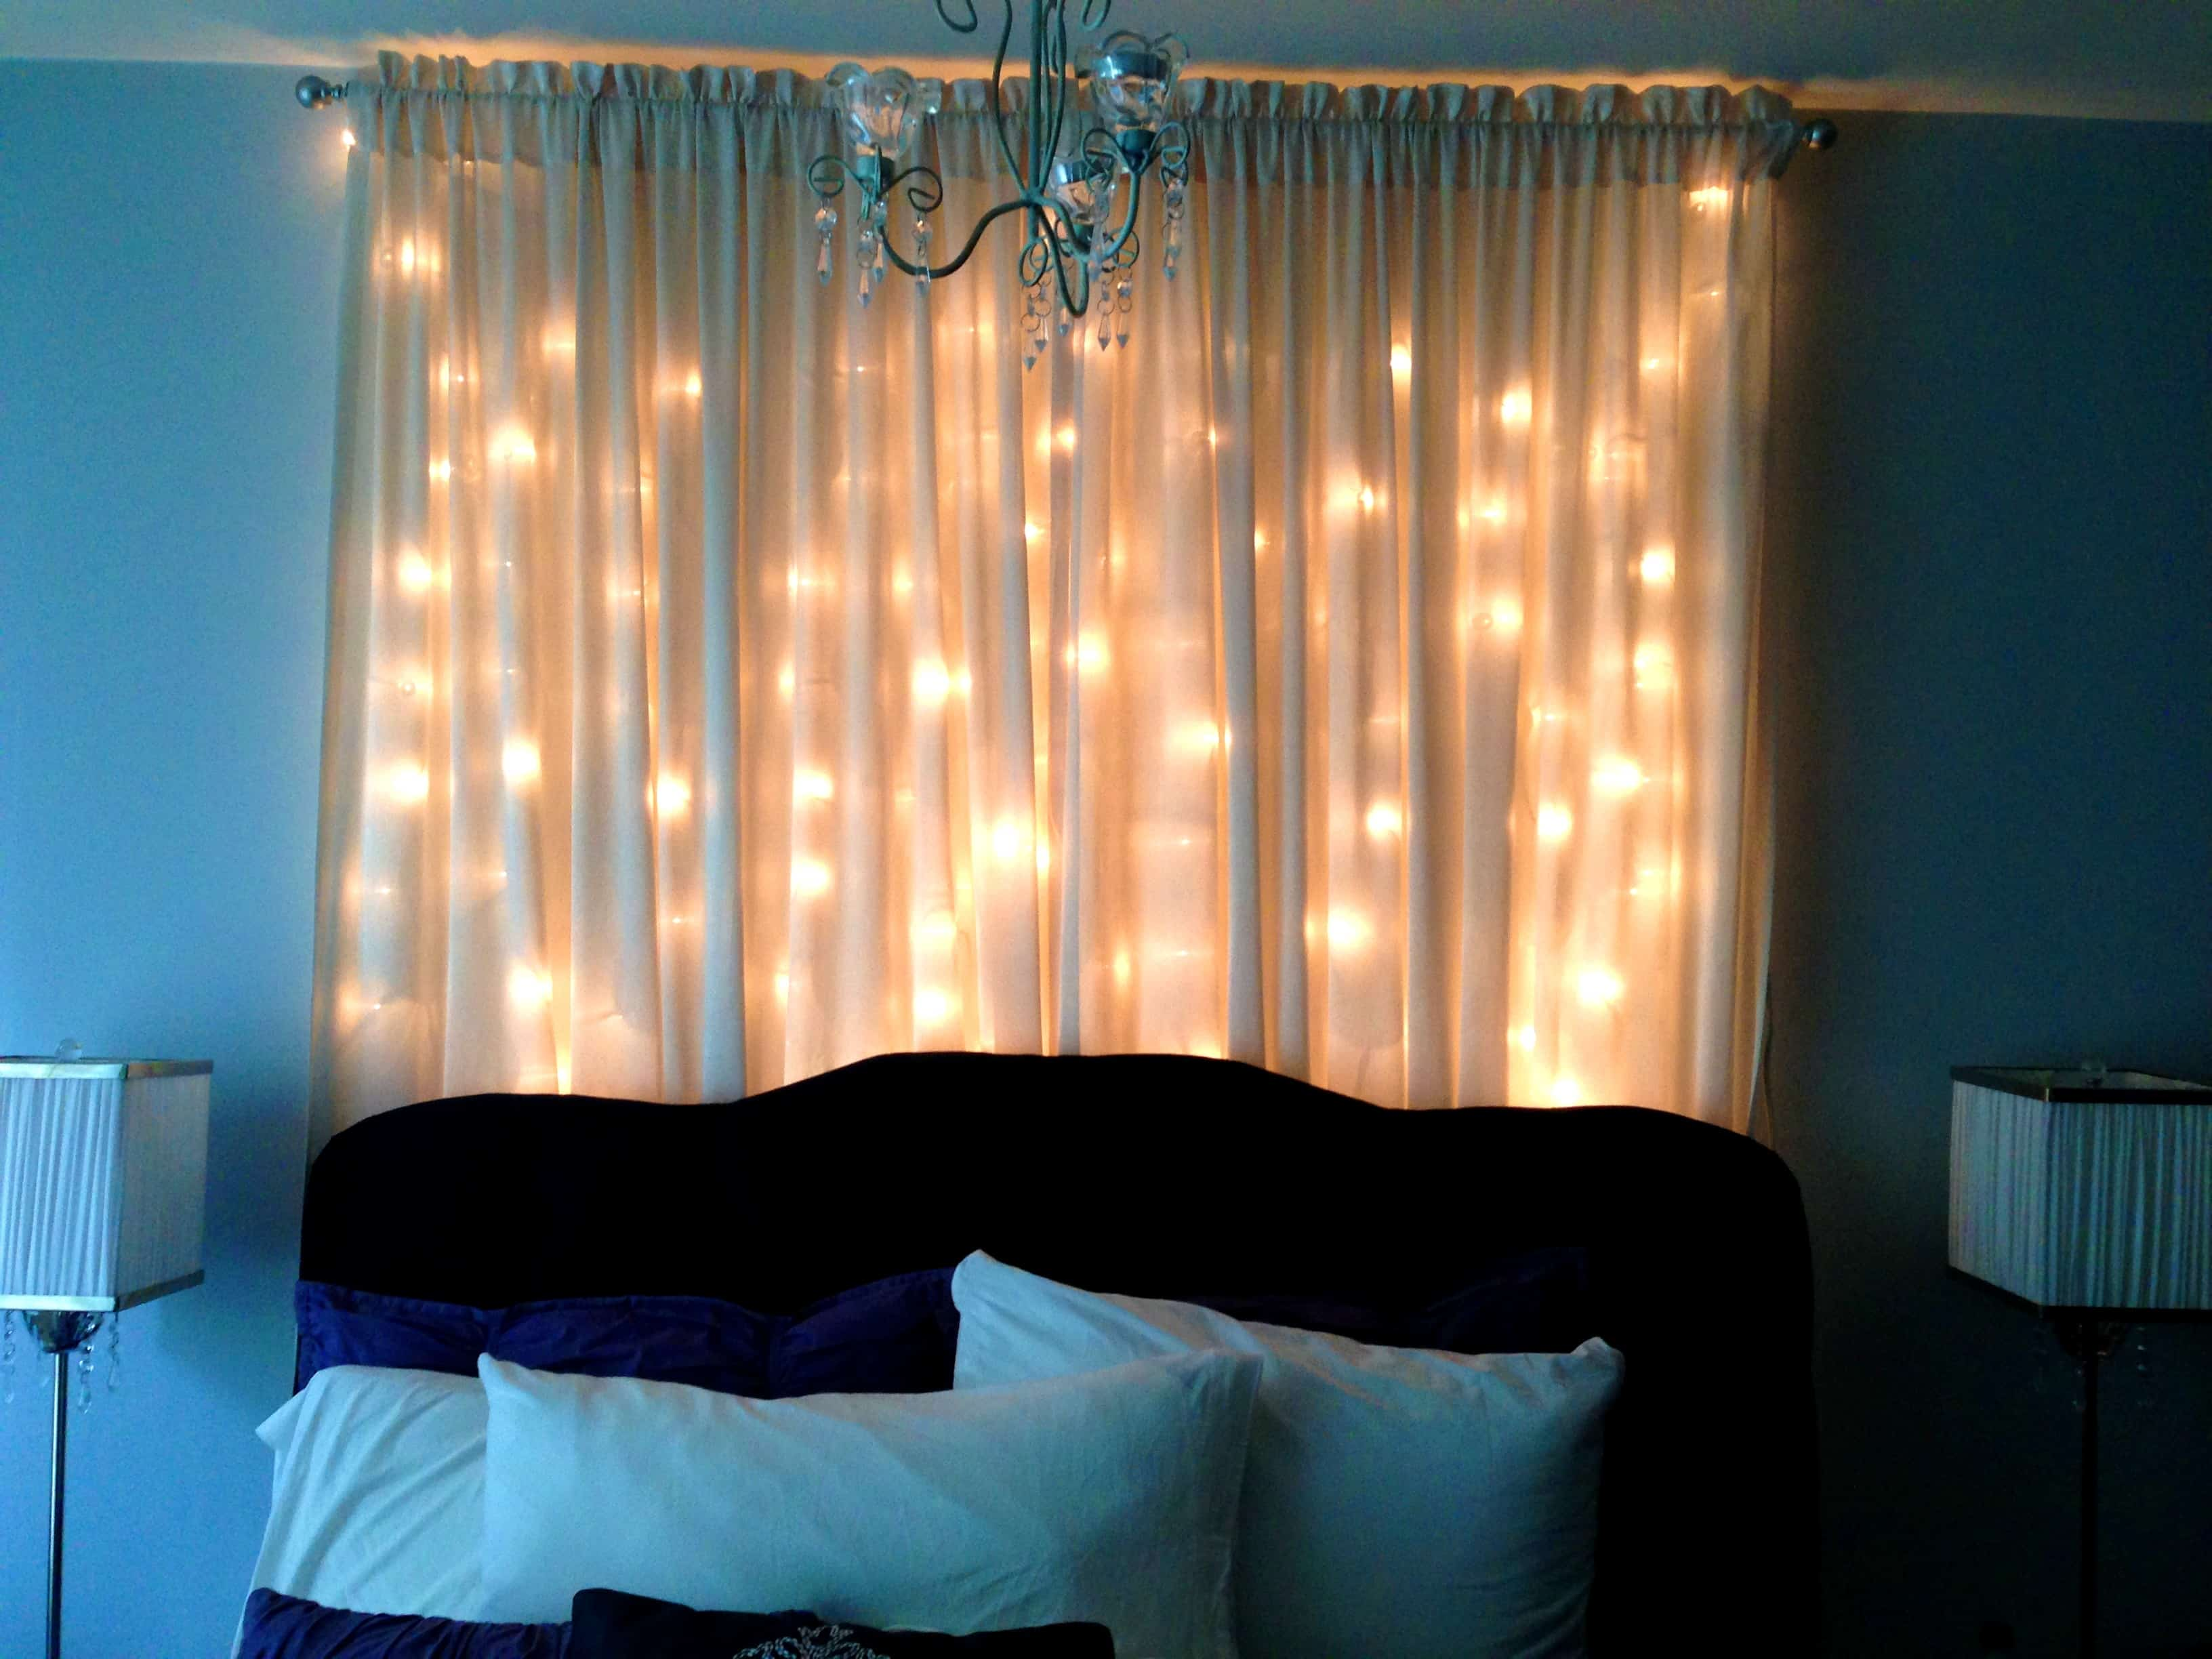 An easy way to create that charming effect while using a curtain full of lights is placing the lights directly on the window and placing the curtains on top